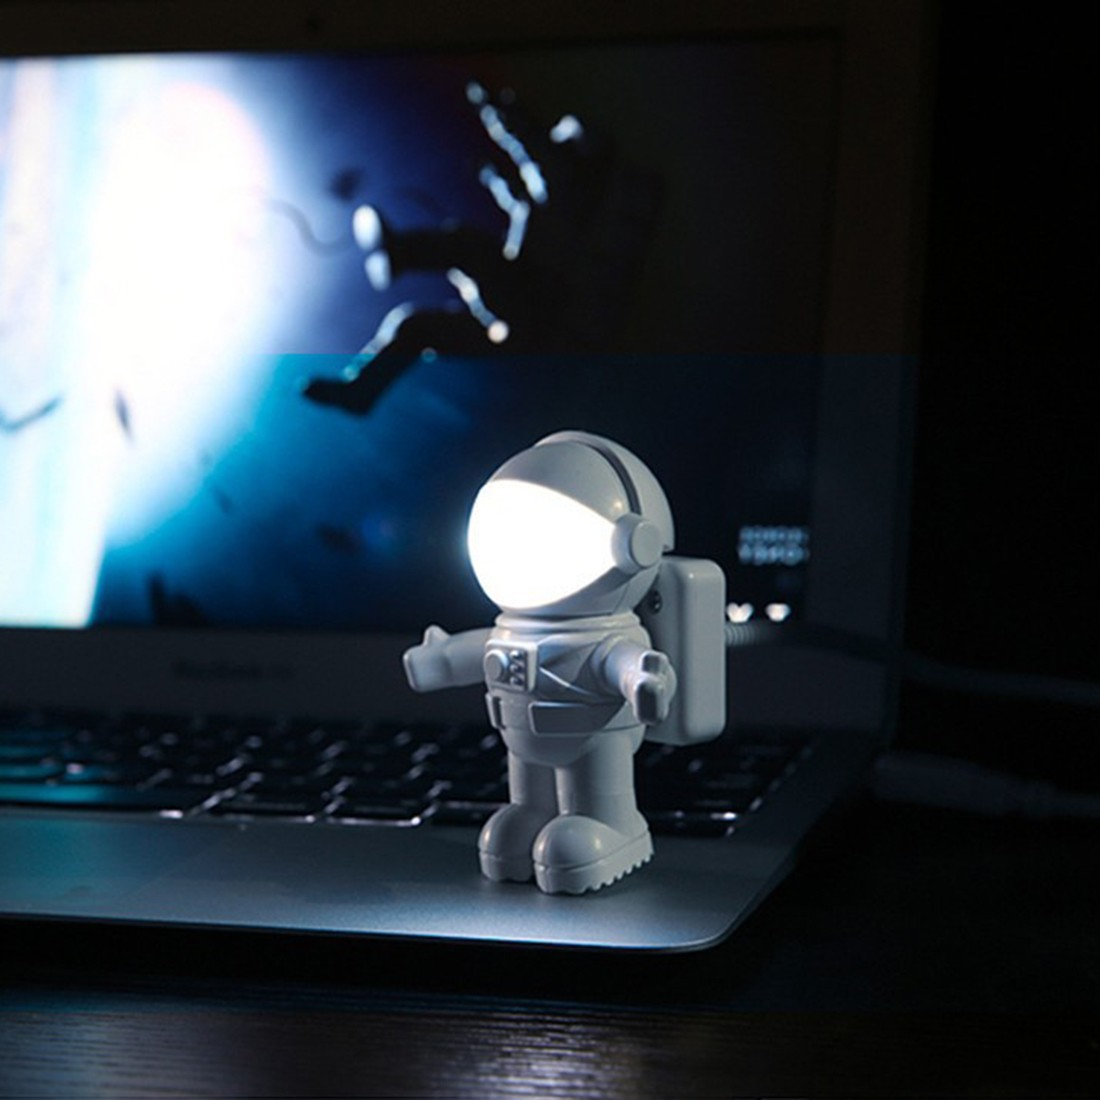 Flexible USB White Astronaut Tube Mini LED Night Light DC 5V Bulb For Laptop Notebook PC Reading Children Gift Home Decoration